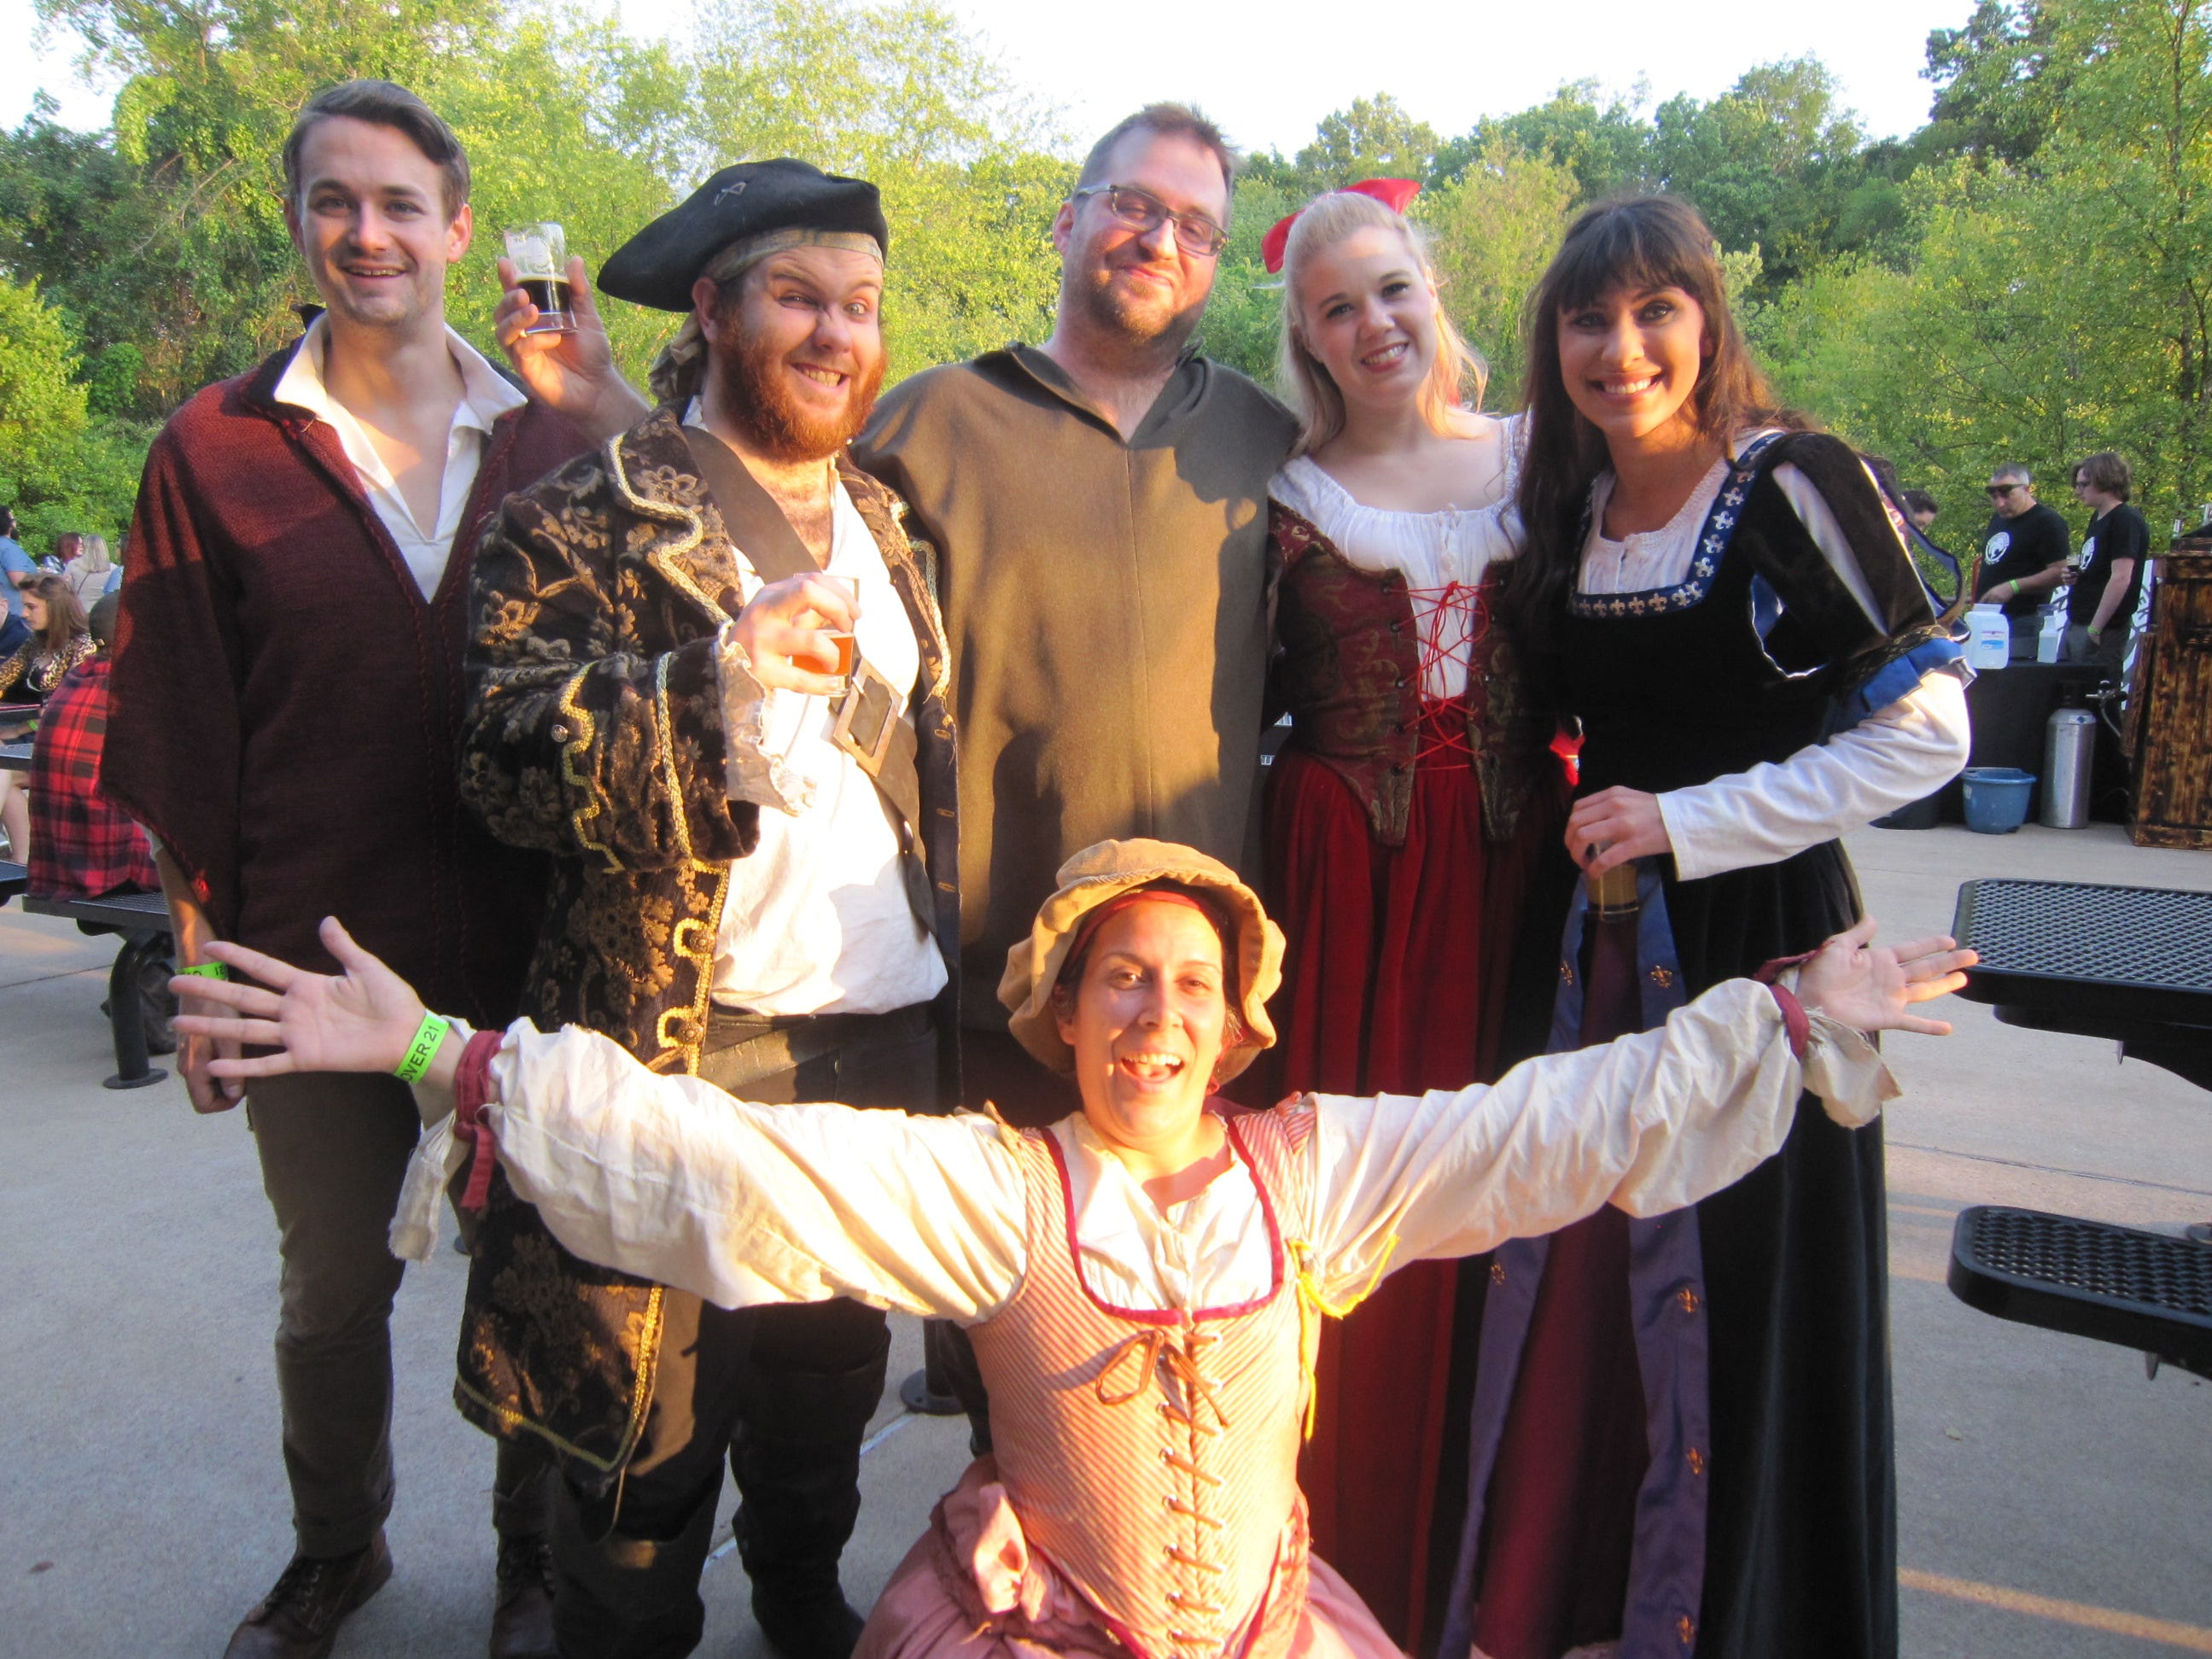 Murfreesboro Little Theatre often participates in the Discovery Center at Murfree Springs Shakesbeer event.